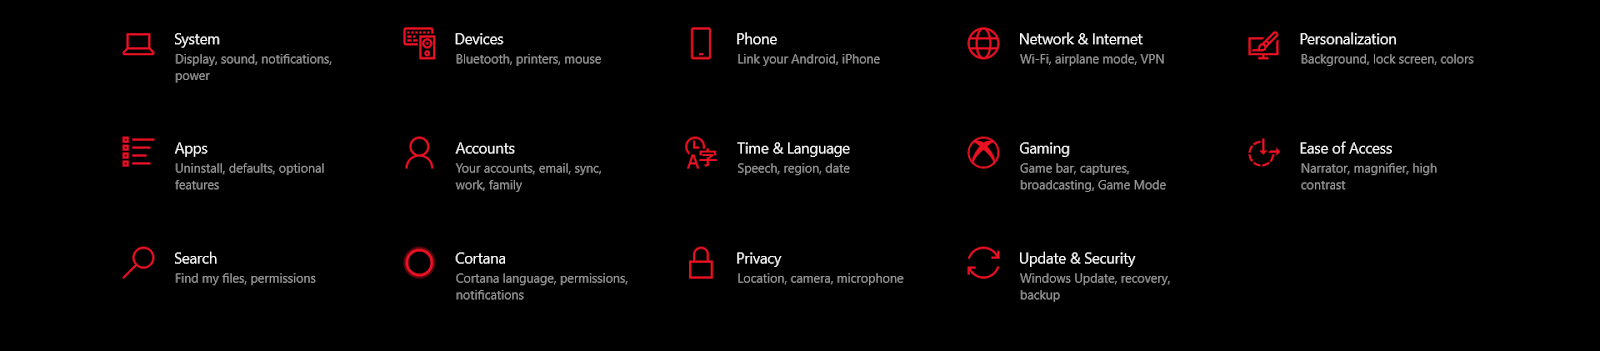 Notifications & Actions options.